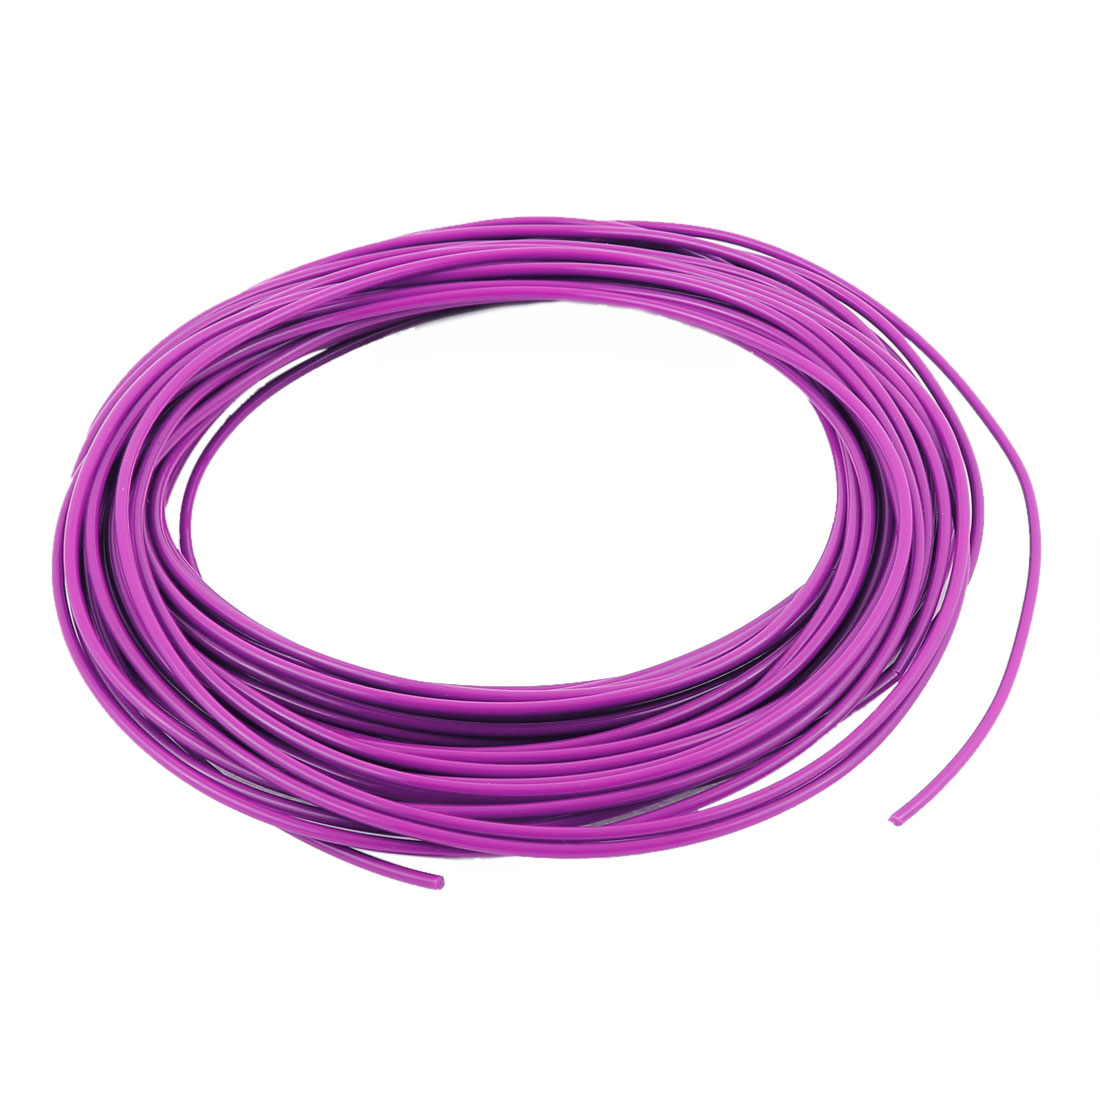 10m 3D Printer Pen Painting Filament Refills PLA Printing Material Purple